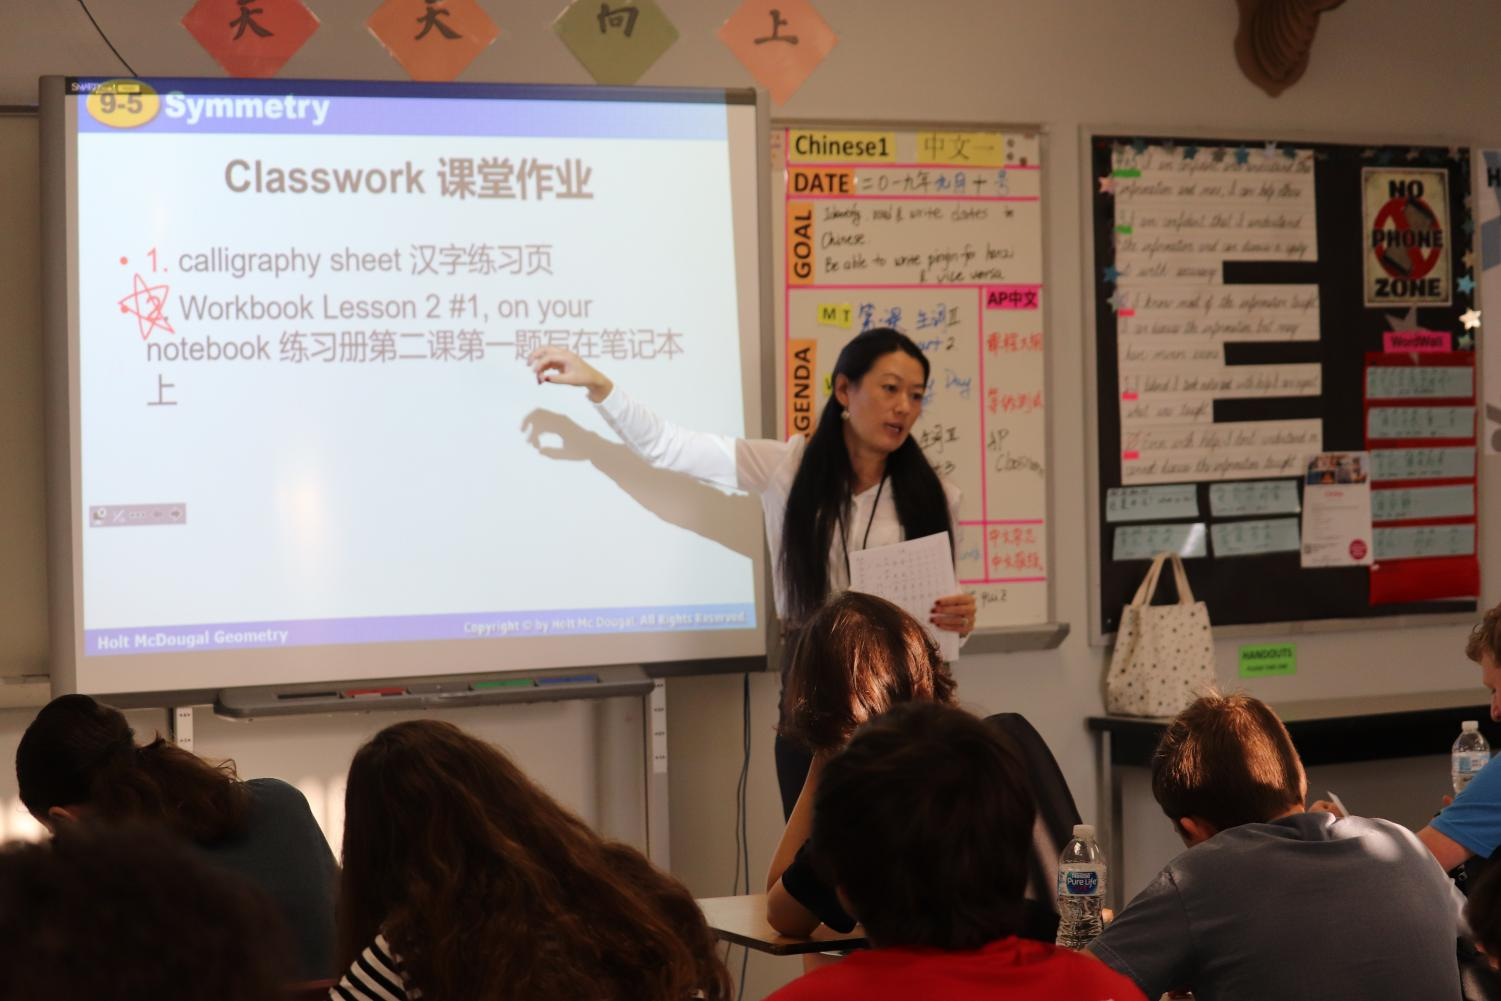 Zhang explains the directions to a calligraphy activity the class is doing.  Calligraphy is a traditional art form popular in China.